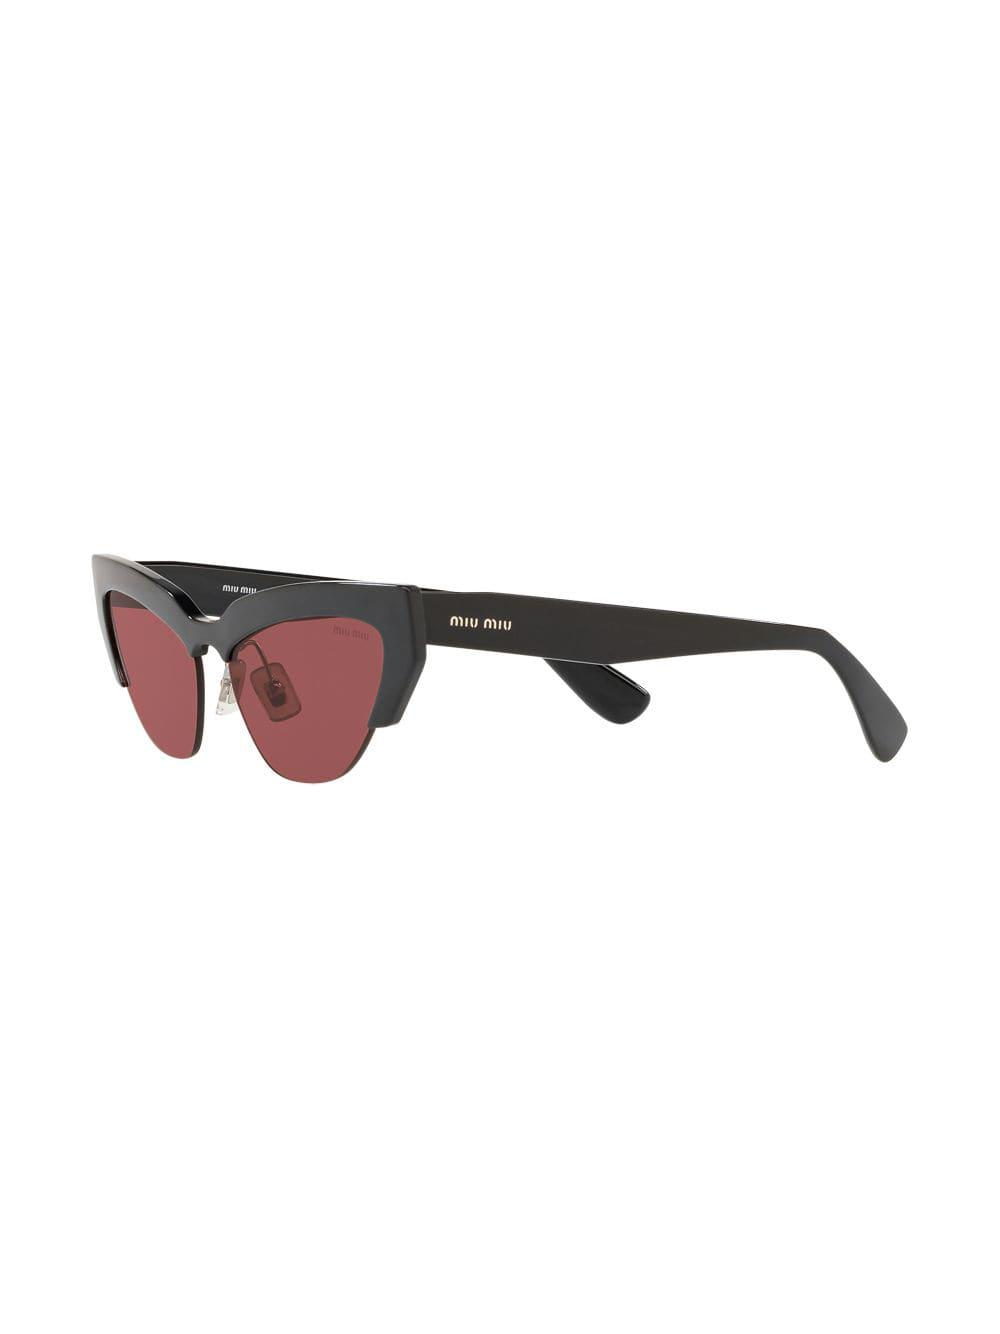 c2453dc4492 Miu Miu Razor Cat Eye Sunglasses in Black - Lyst